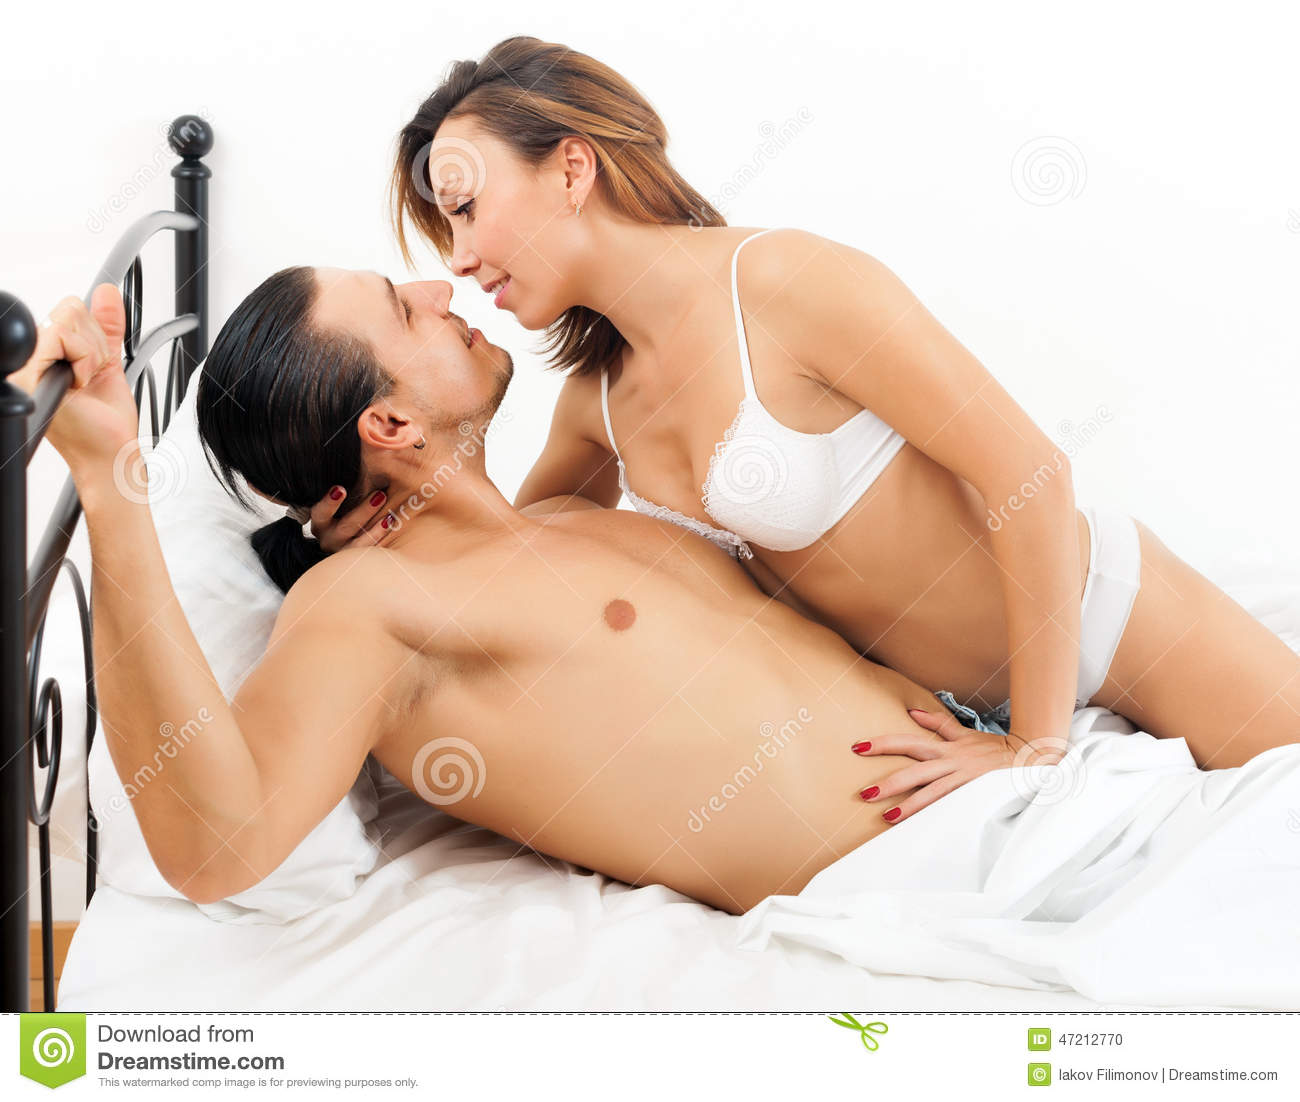 brunette woman in underwear having sex stock photo - image of couple